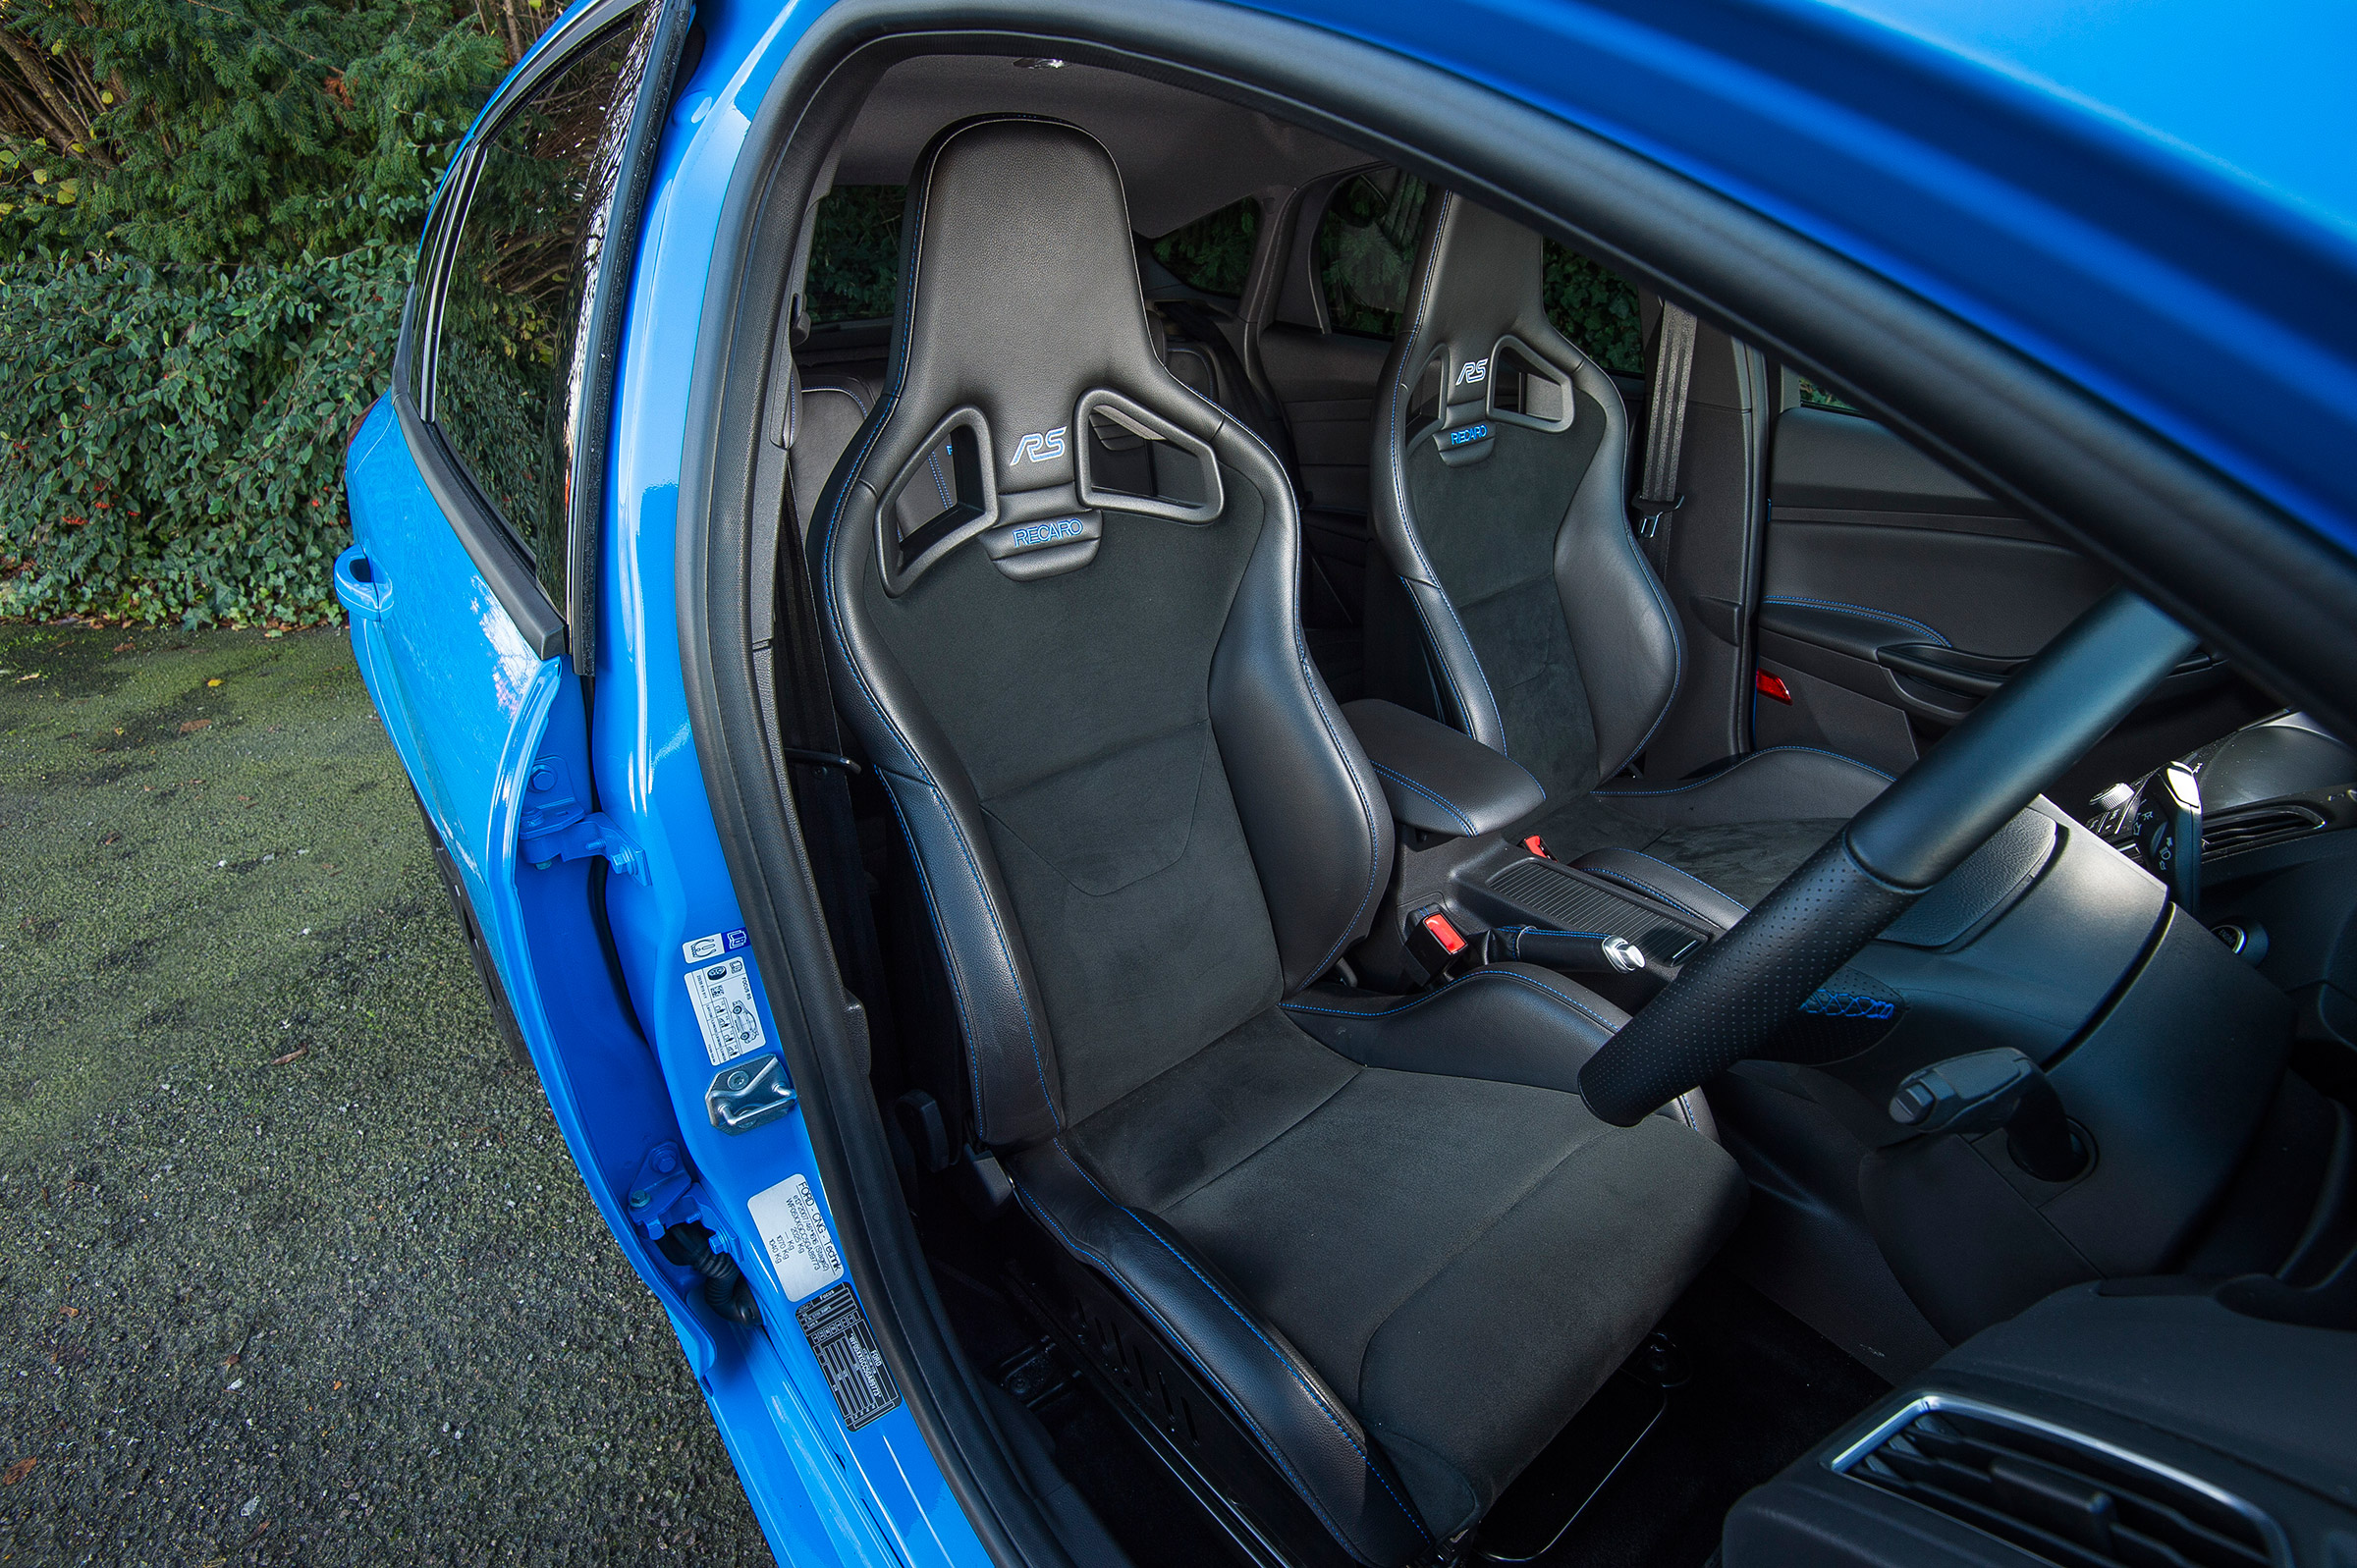 2017 Ford Focus RS Interior Seats Front (Photo 12 of 23)